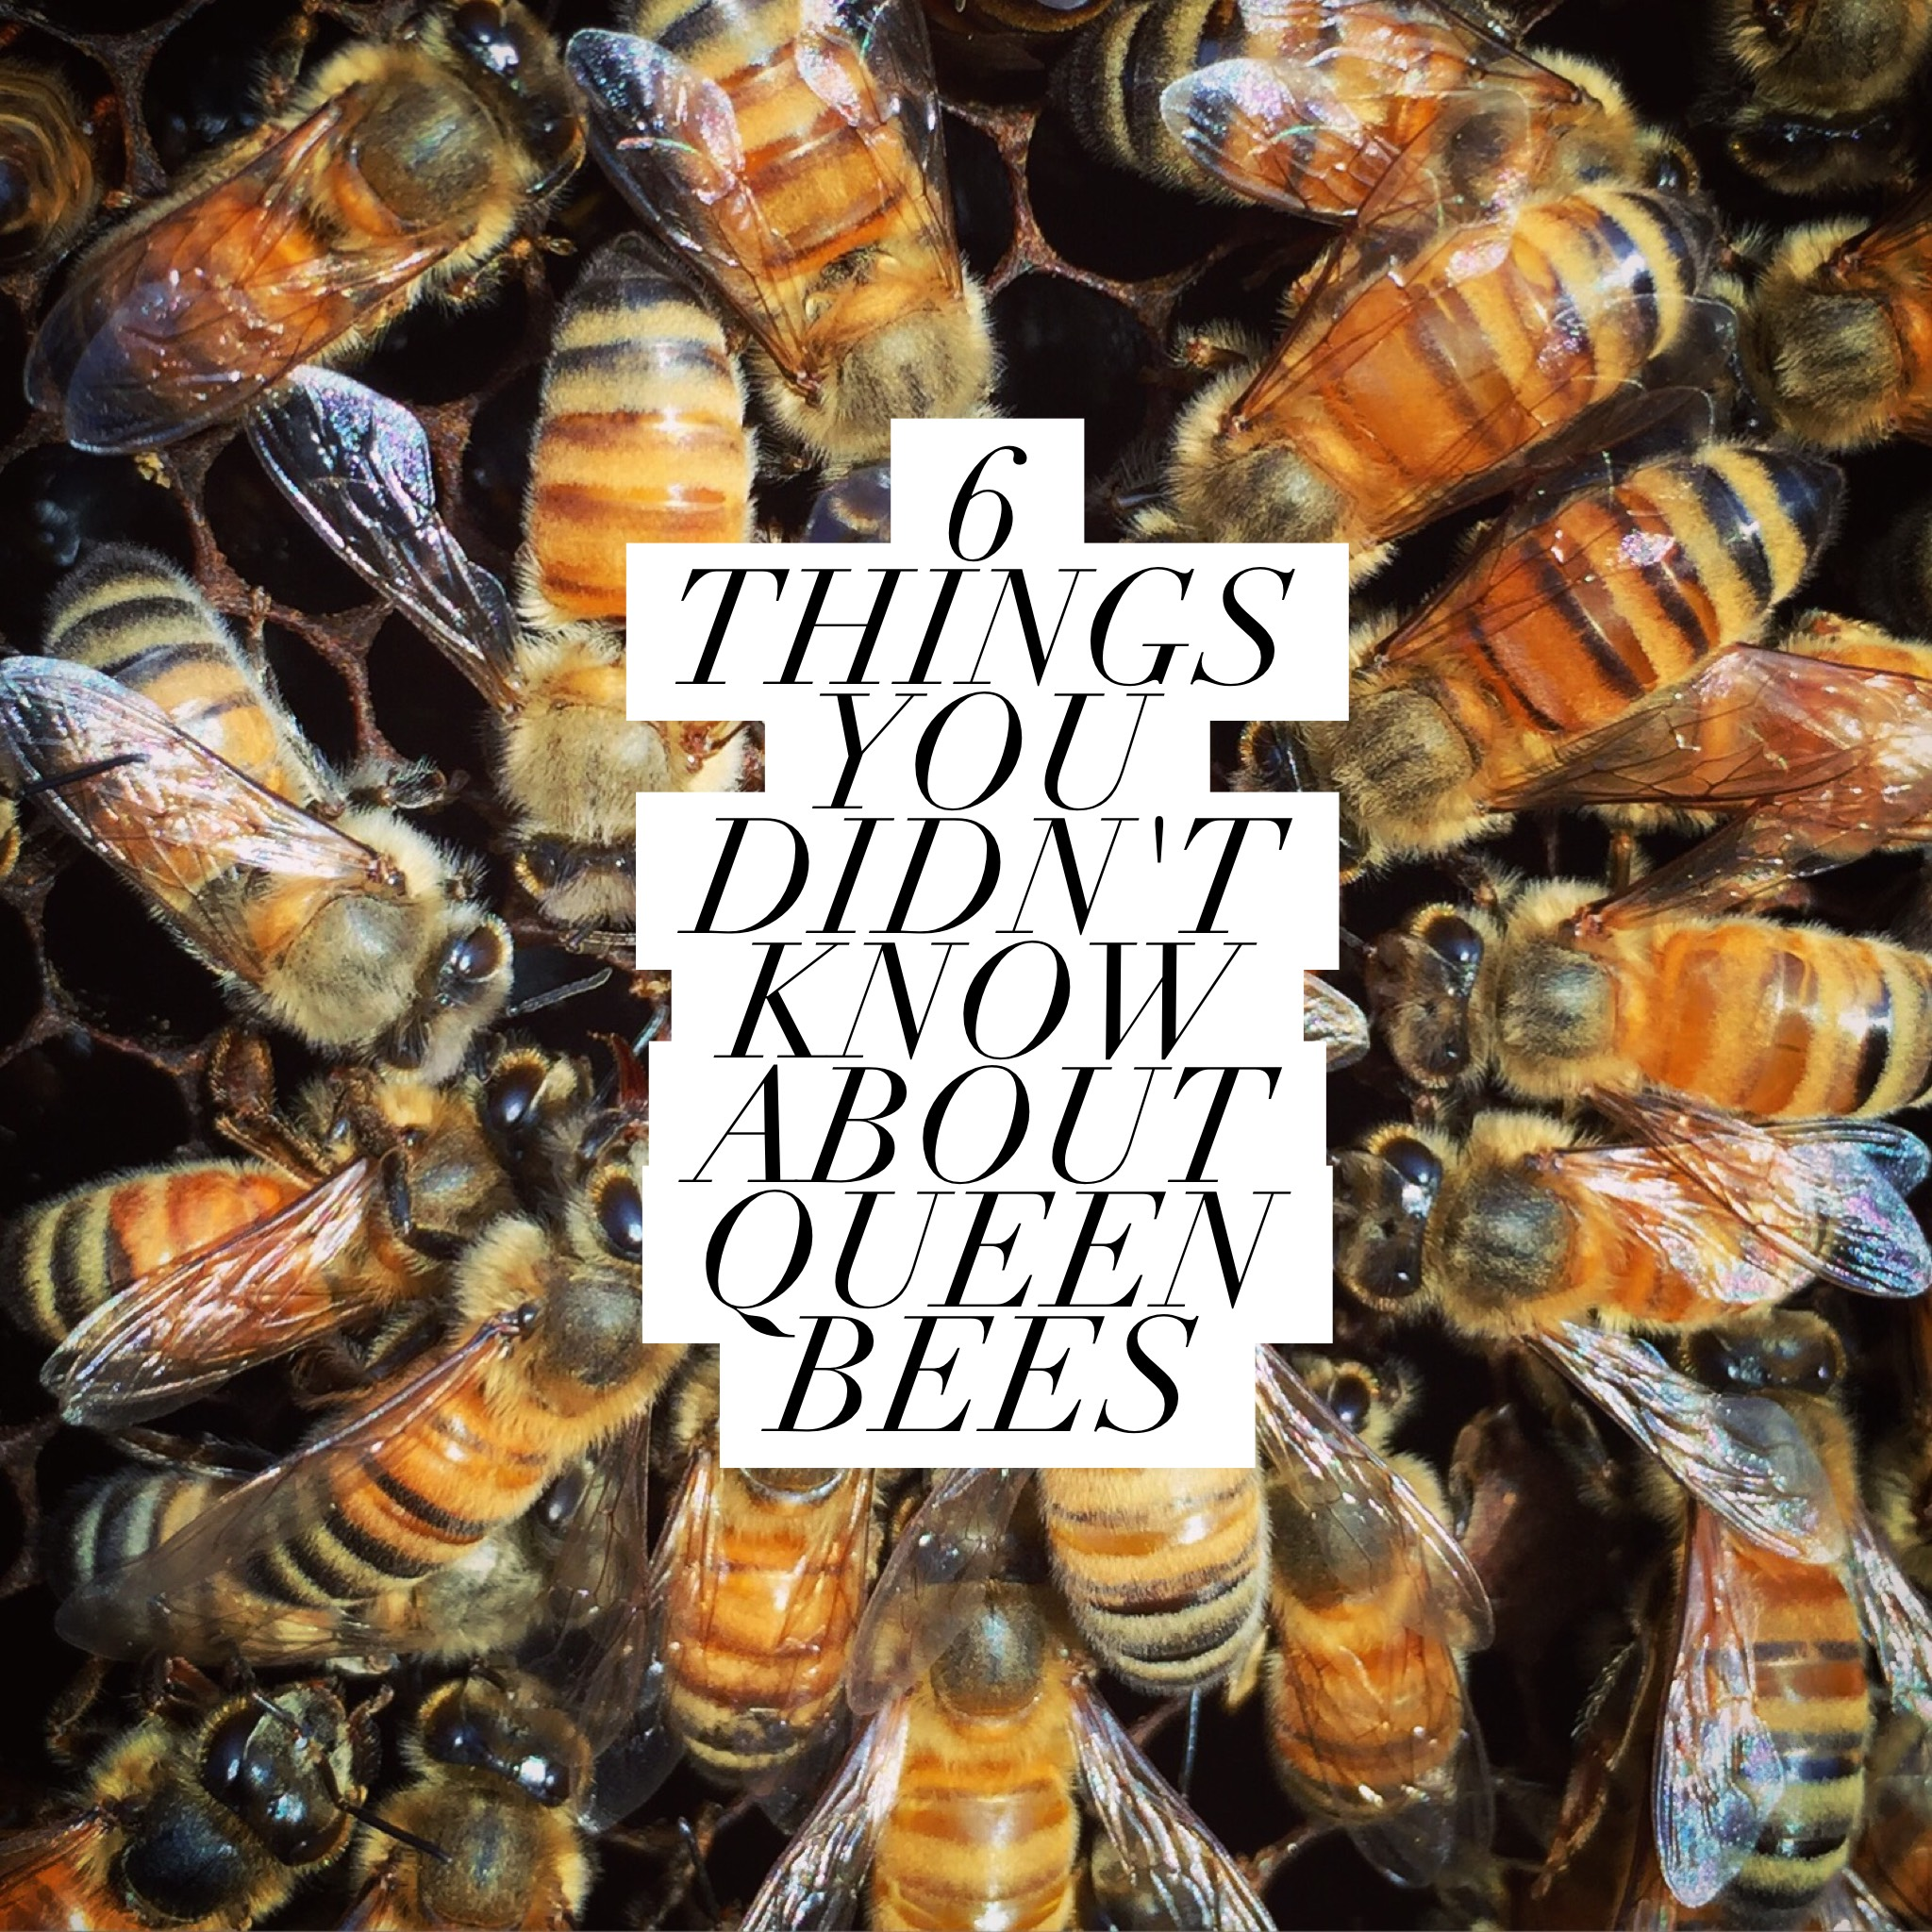 Fanciful Beekeeping Like A Girl Things You Know About Queen Bees Do Bees Sleep On Plants Do Bees Sleep At Night Time houzz-02 Do Bees Sleep